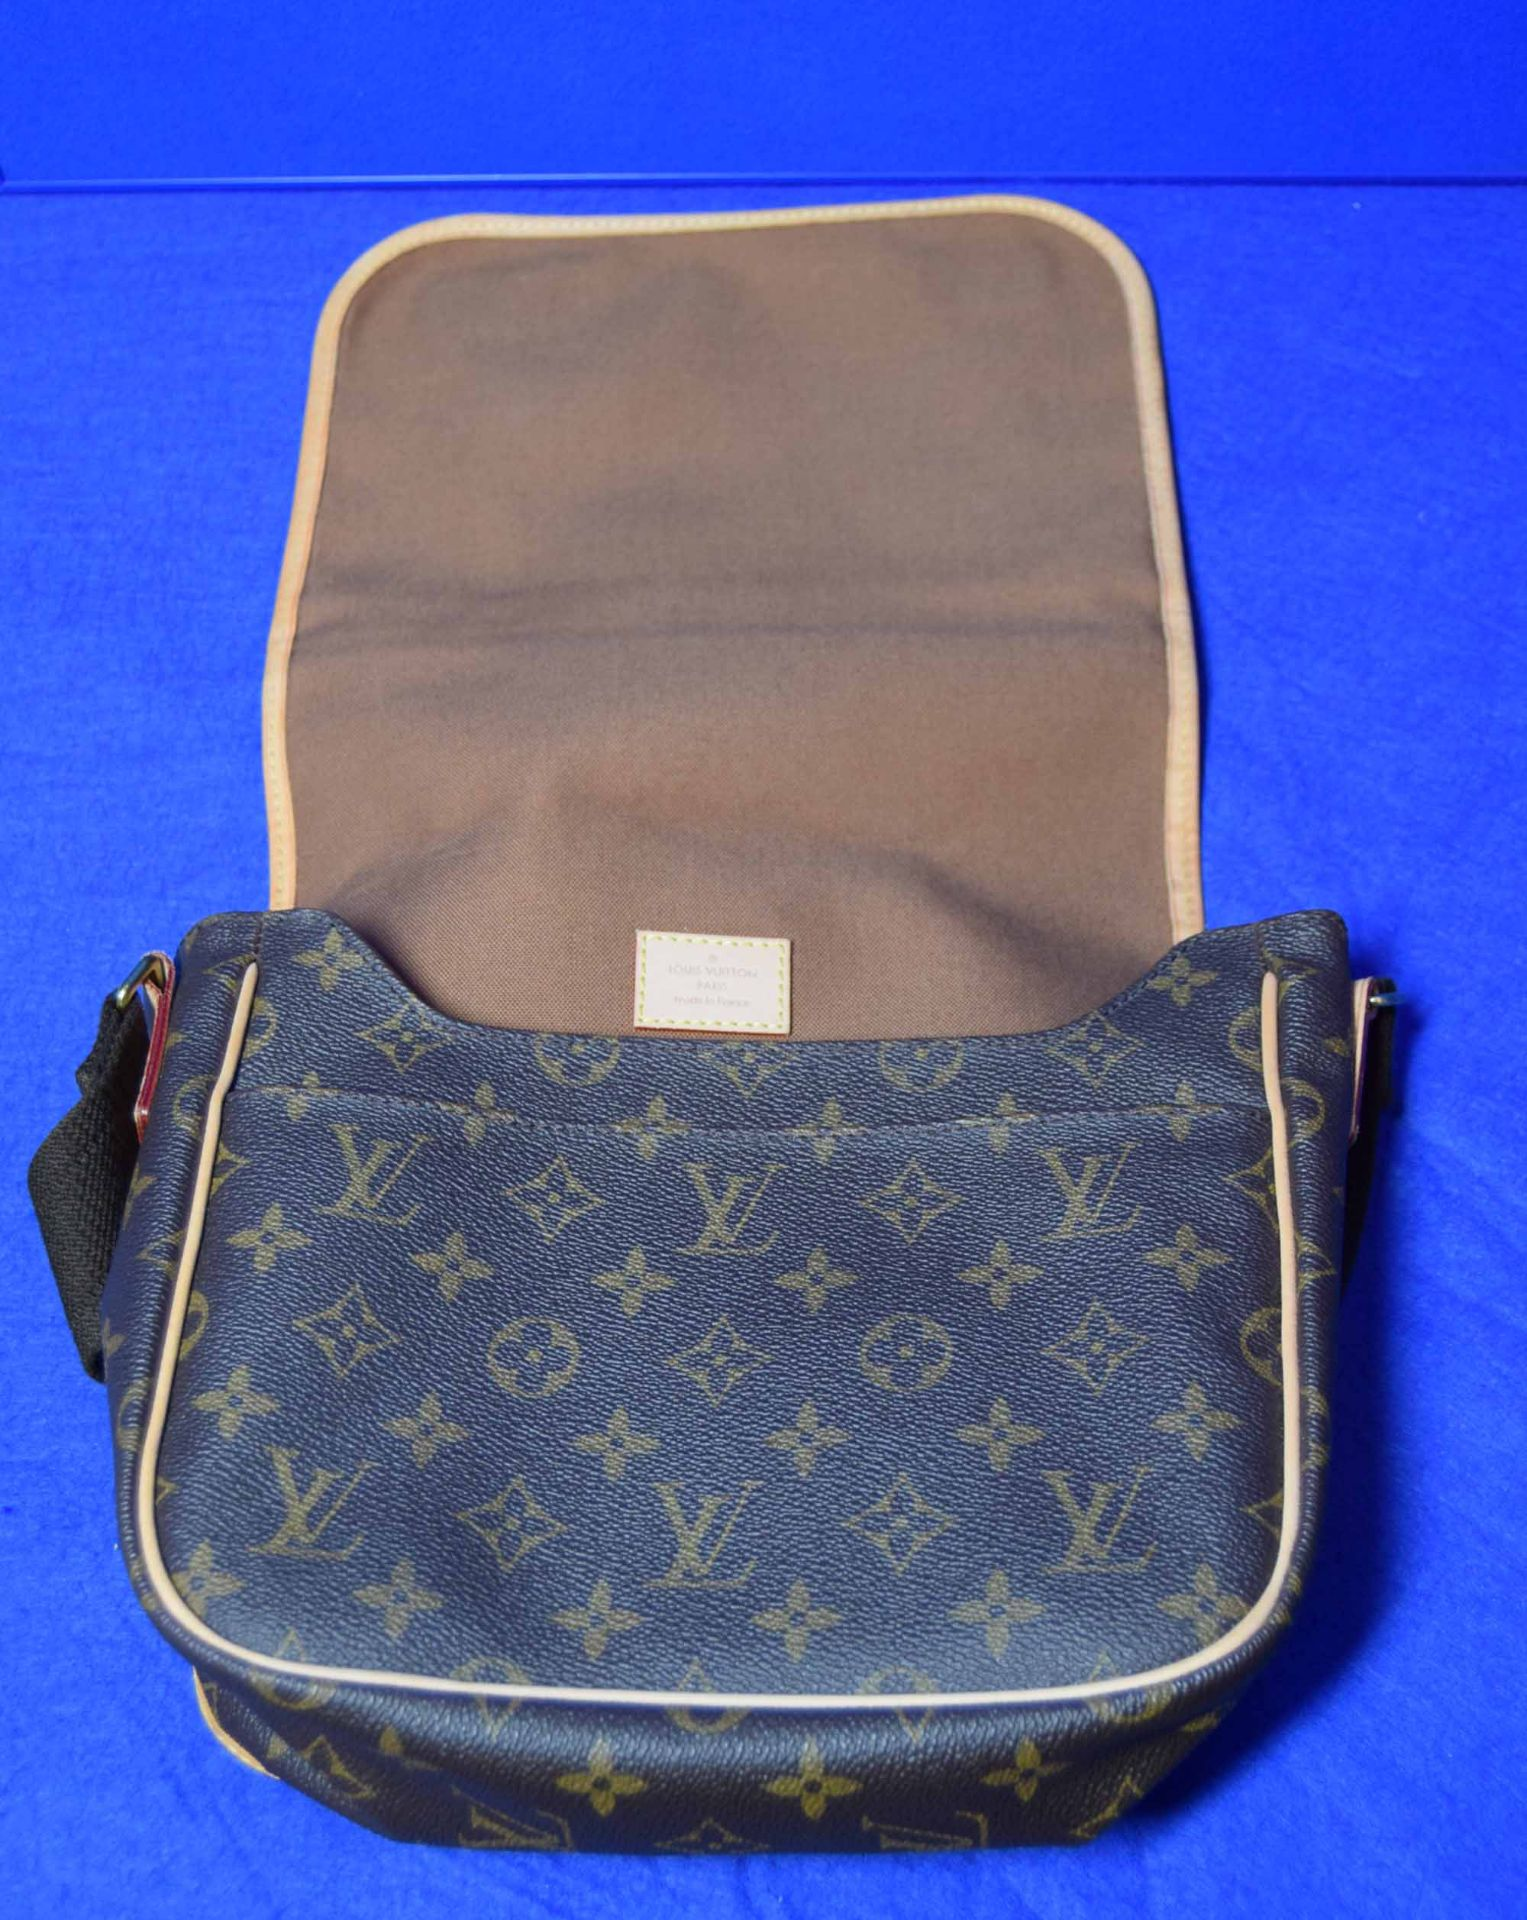 A LOUIS VUITTON Messenger Bosphore Cross Body Shoulder Bag in Chocolate Brown/Camel Leather with - Image 5 of 7